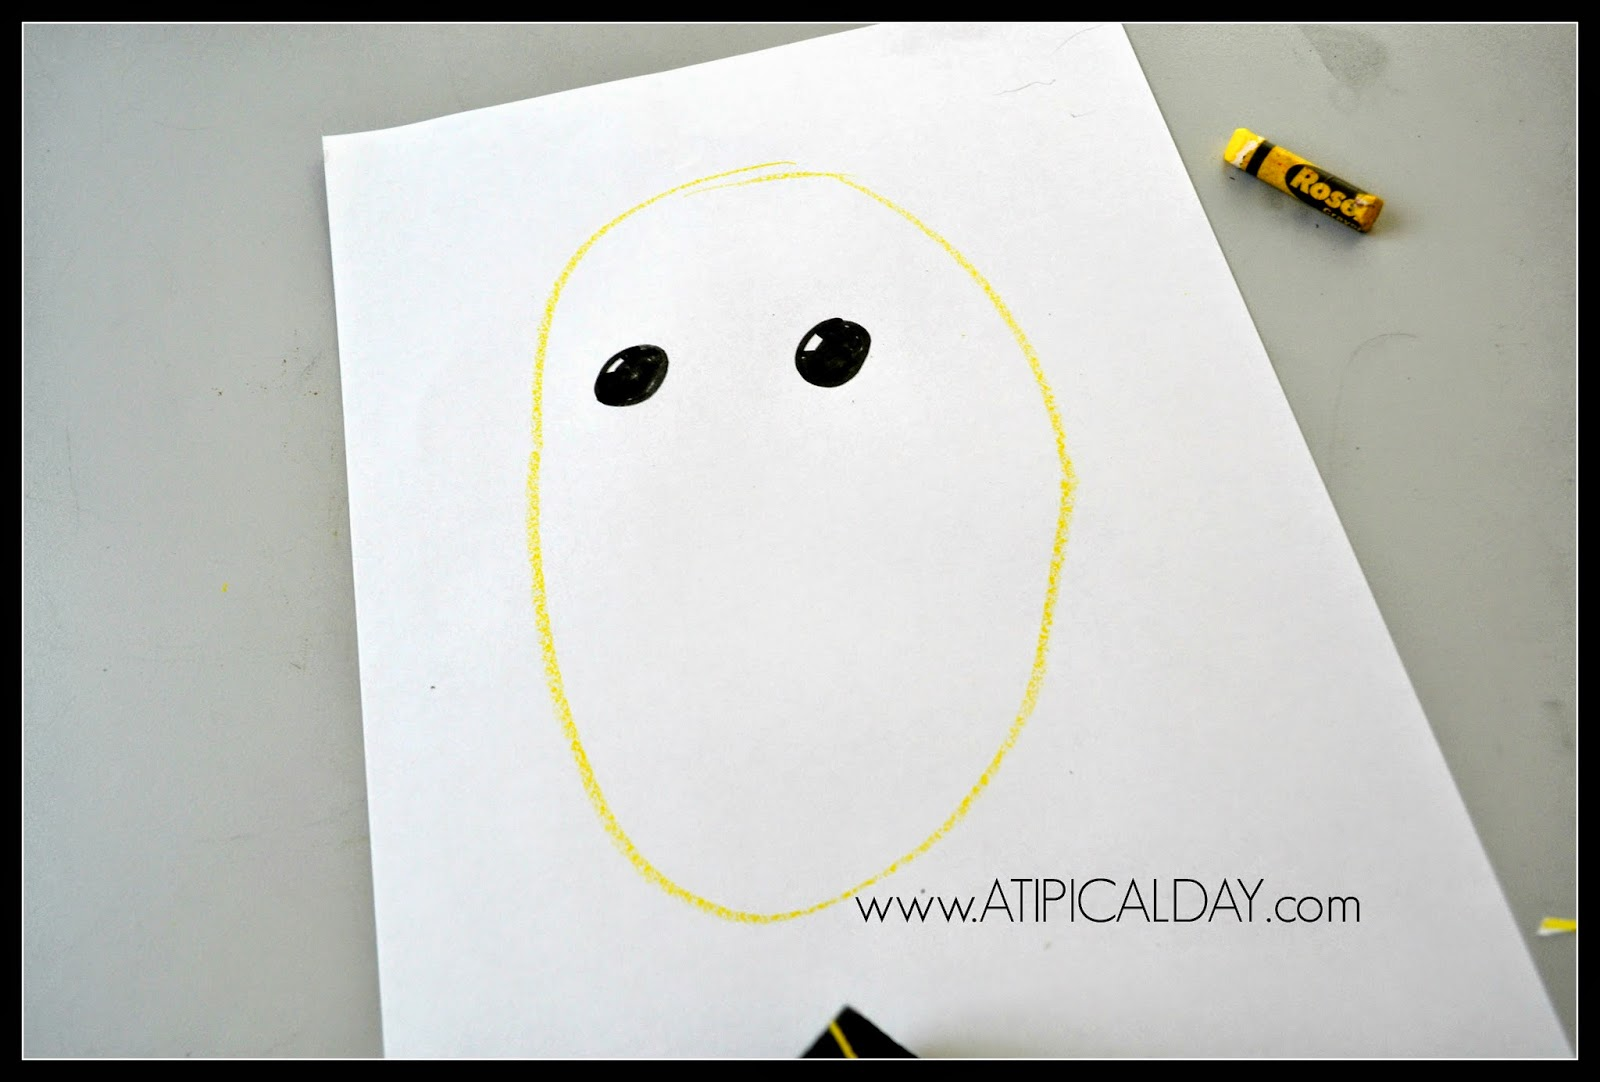 A piece of white paper with a yellow circle and 2 black eyes